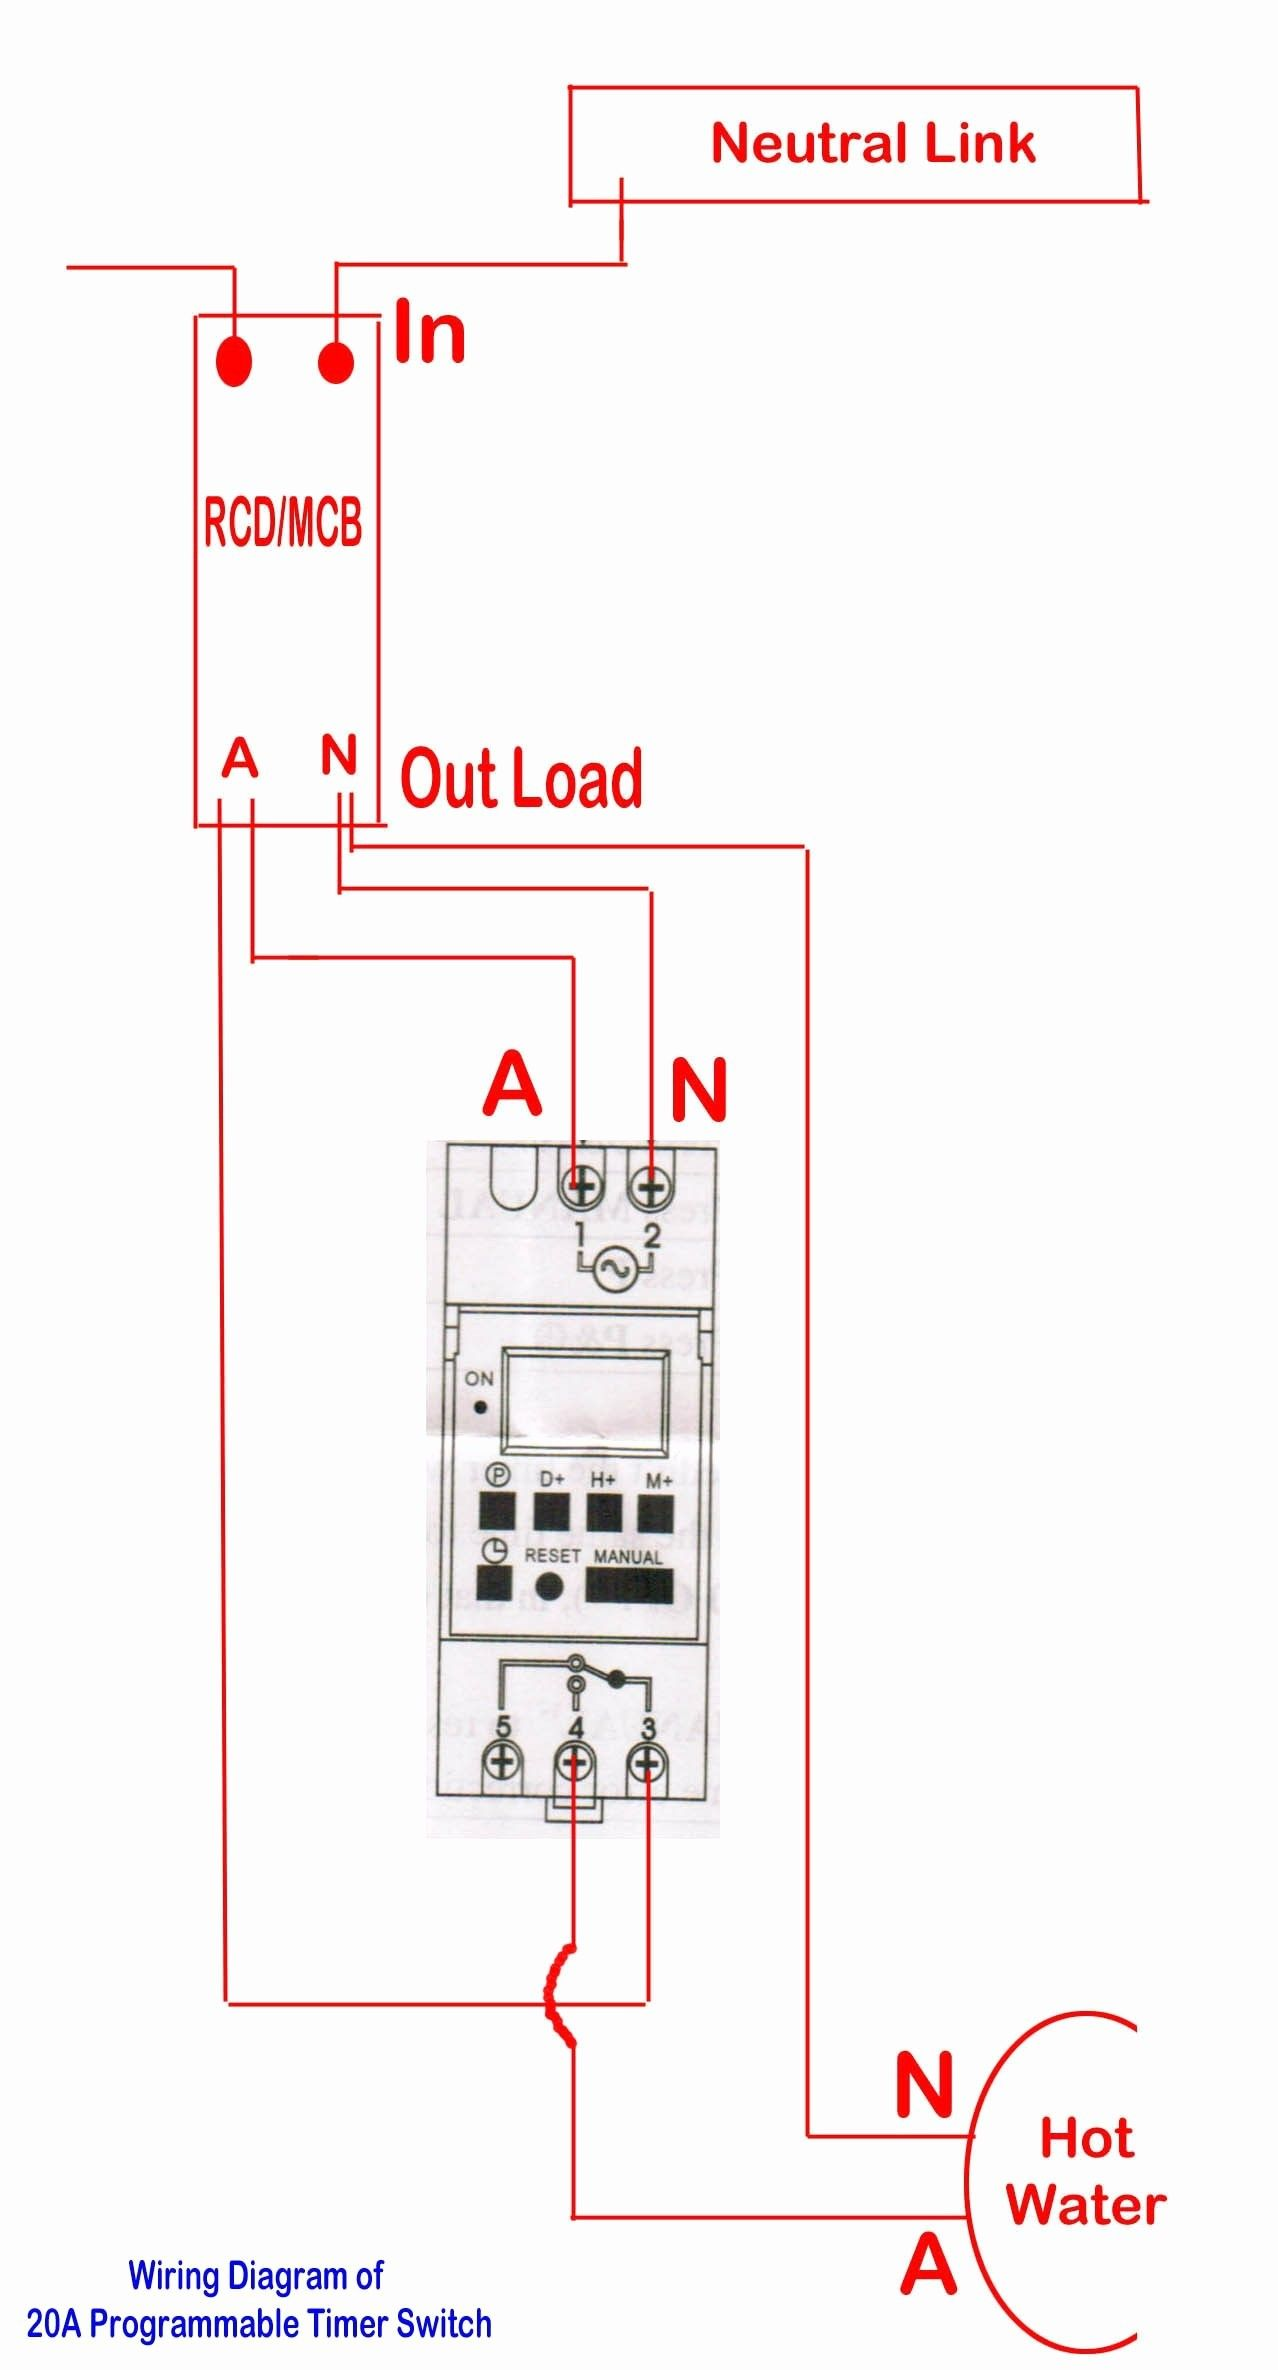 Unique Wiring Diagram For Single Pole Light Switch Diagram Diagramsample Diagramtemplate Wiringdiagram Diagramch Diagram Light Switch Wiring Diagram Chart